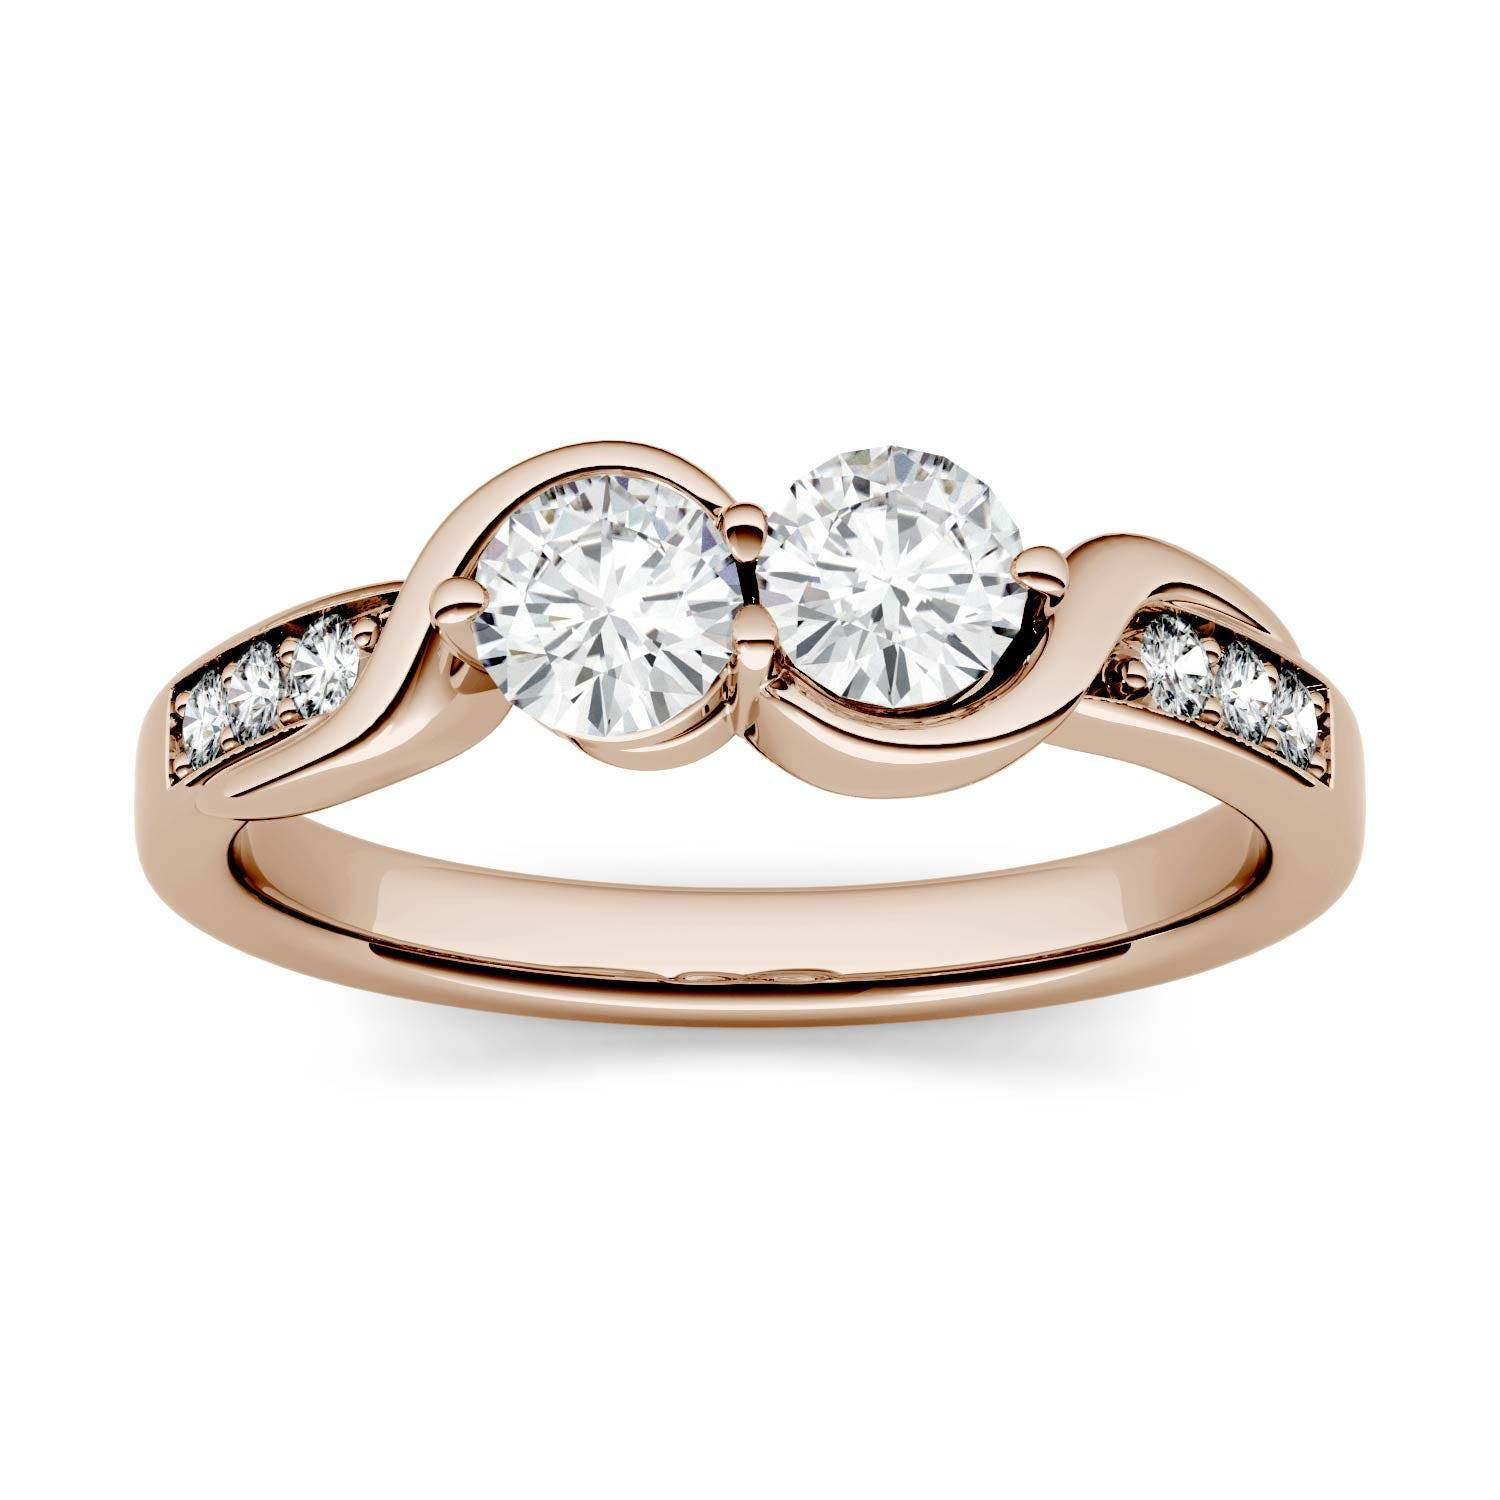 Charles & Colvard Two Stone Swirl with Side Accents Wedding Ring in 14K Rose Gold, Size: 6, 1.12CTW Round Forever One - Colorless Moissanite Charles & Colvard  - Rose Gold - Size: 6